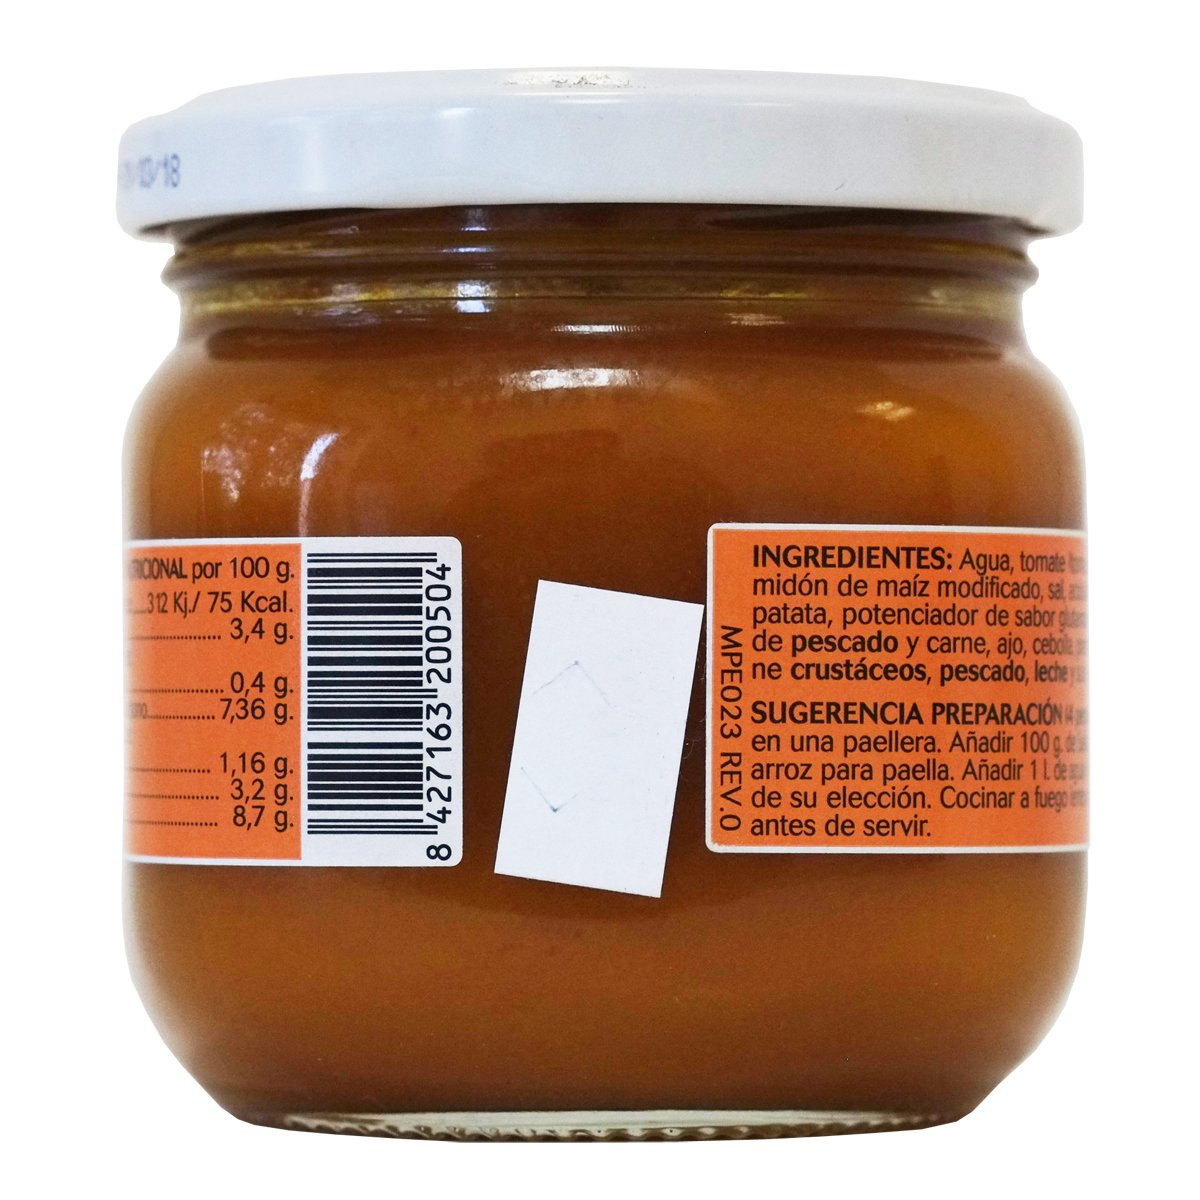 Amazon.com : Paella Sauce Glass Jar 200 gr - Pack of 3 : Grocery & Gourmet Food